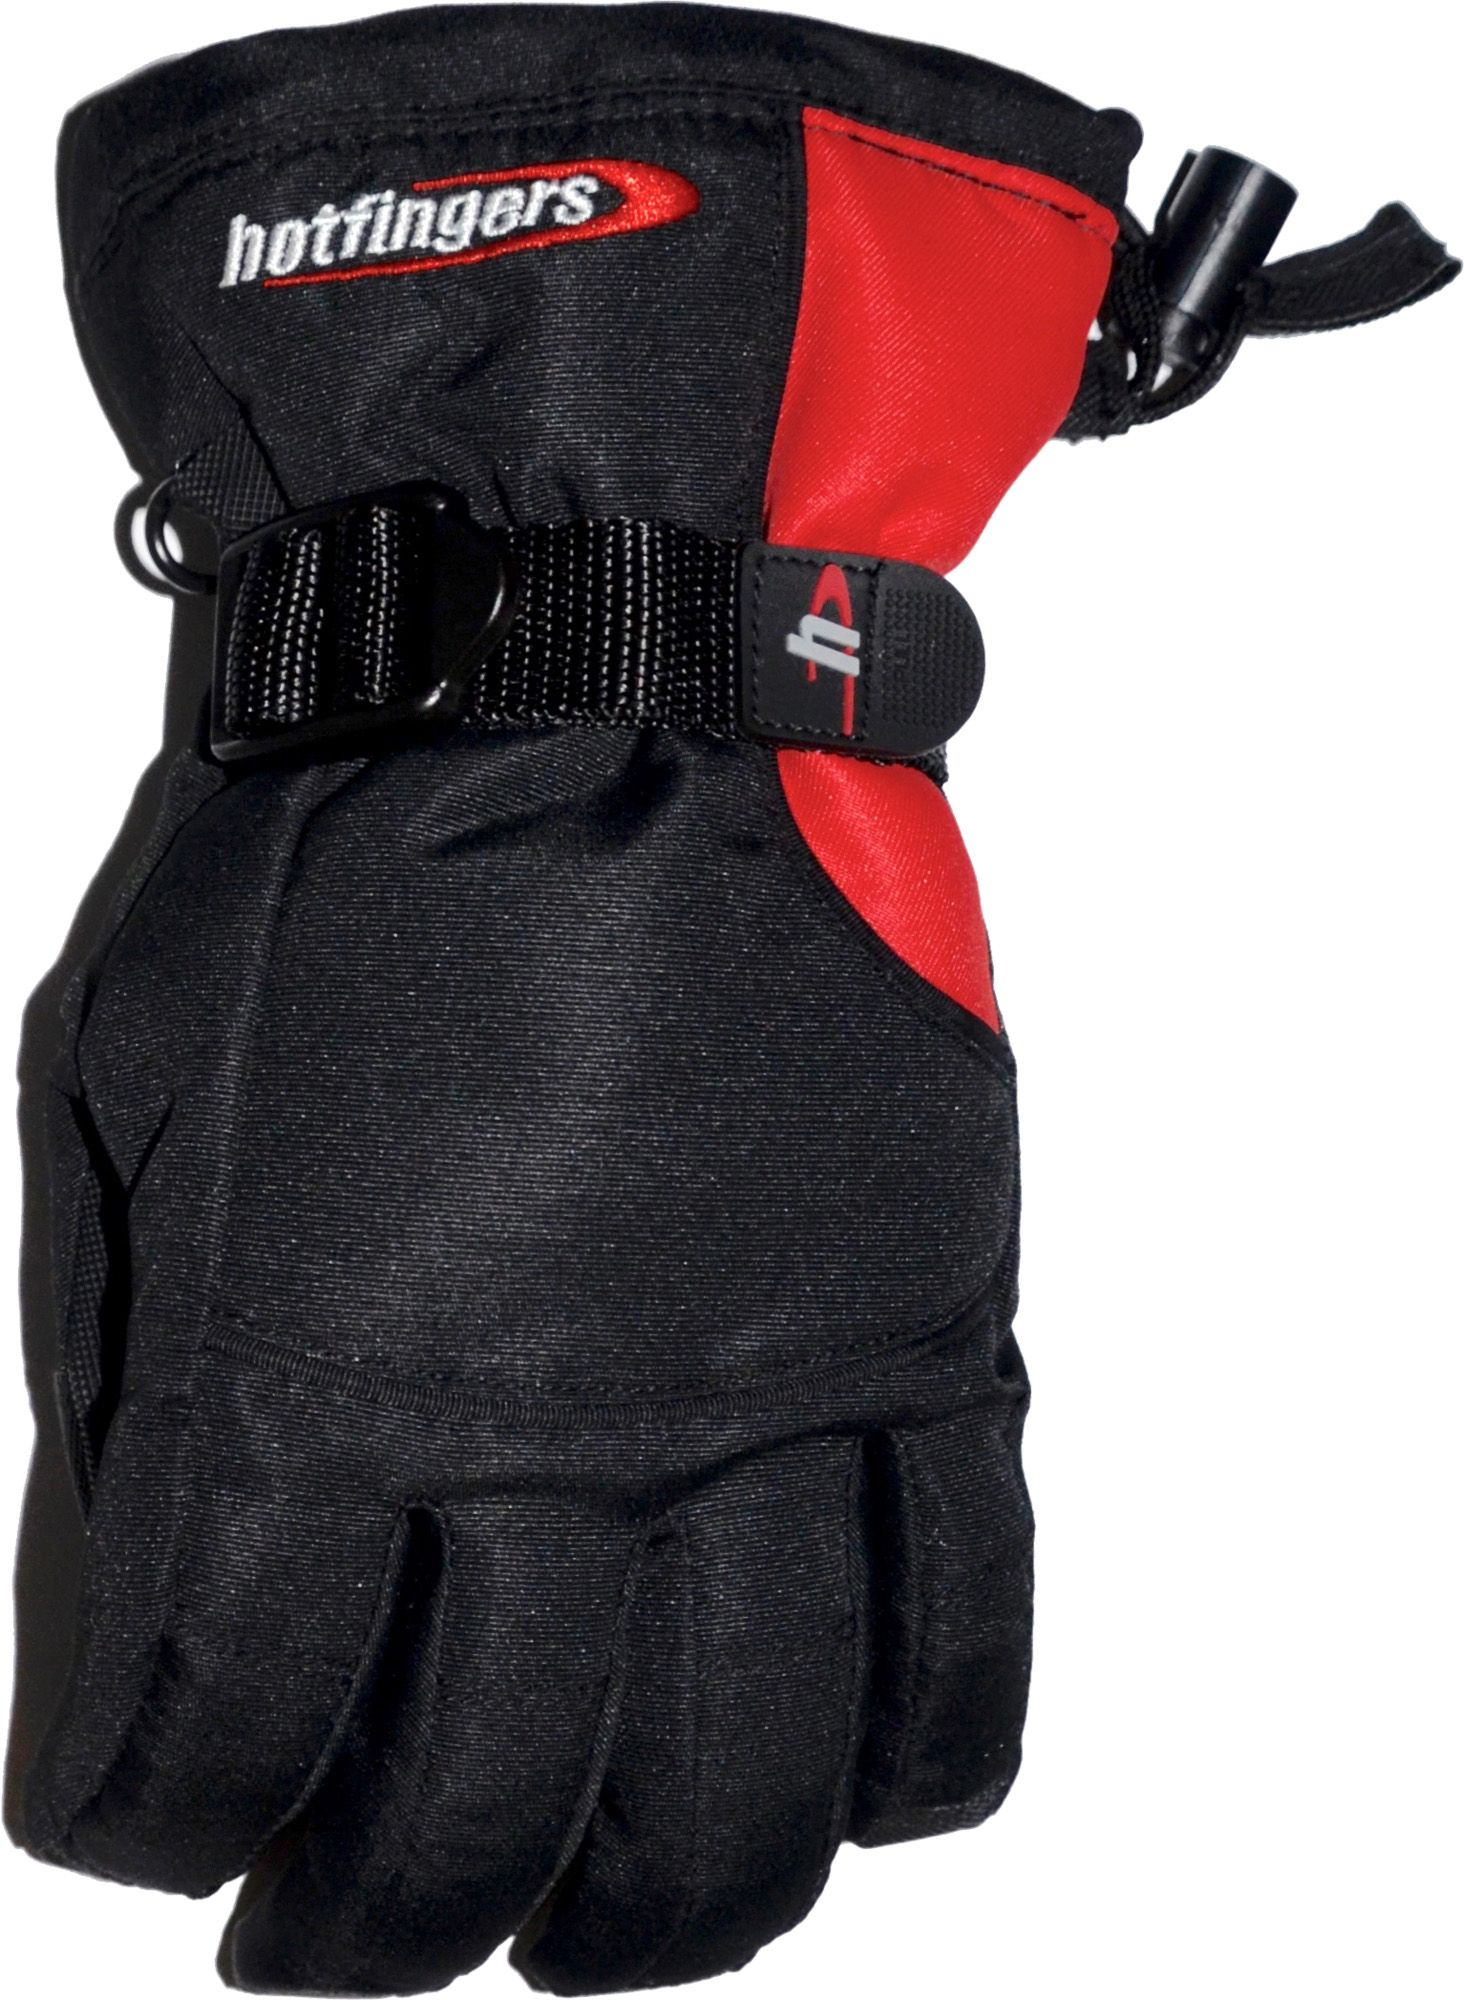 Hot Fingers Youth Rip-N-Go Glove, Kids Unisex, Size: Small, Black thumbnail